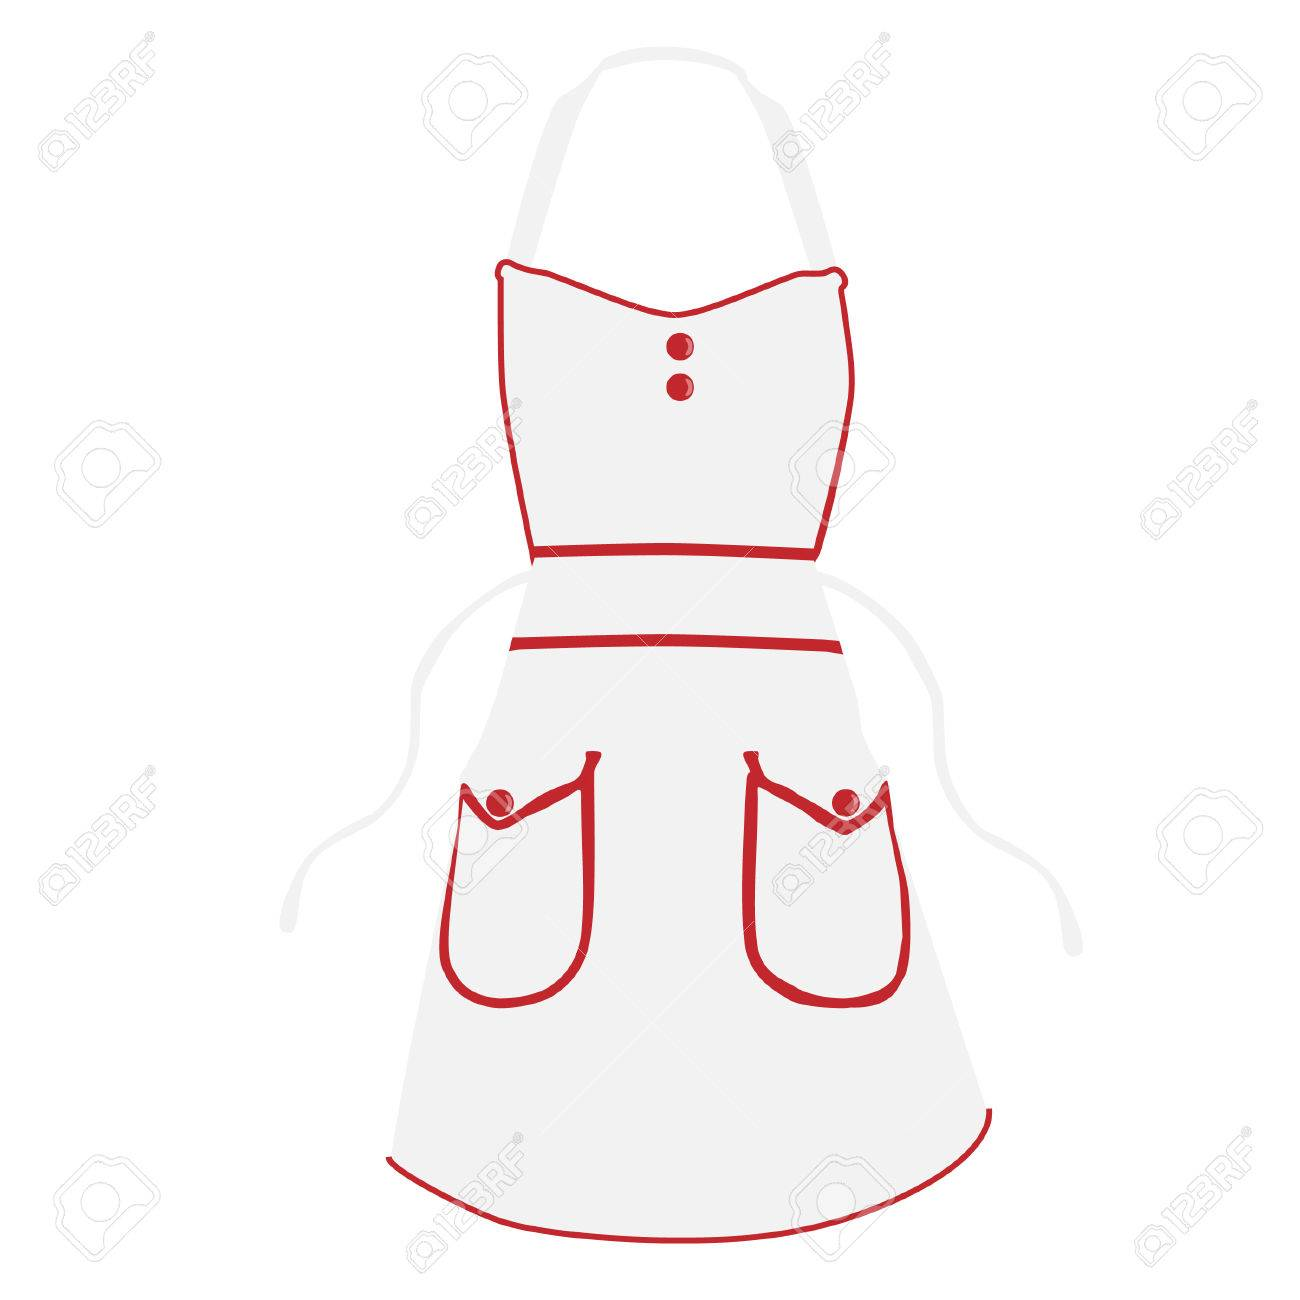 White Kitchen Apron Raster Isolated, Chef Apron Stock Photo, Picture ...